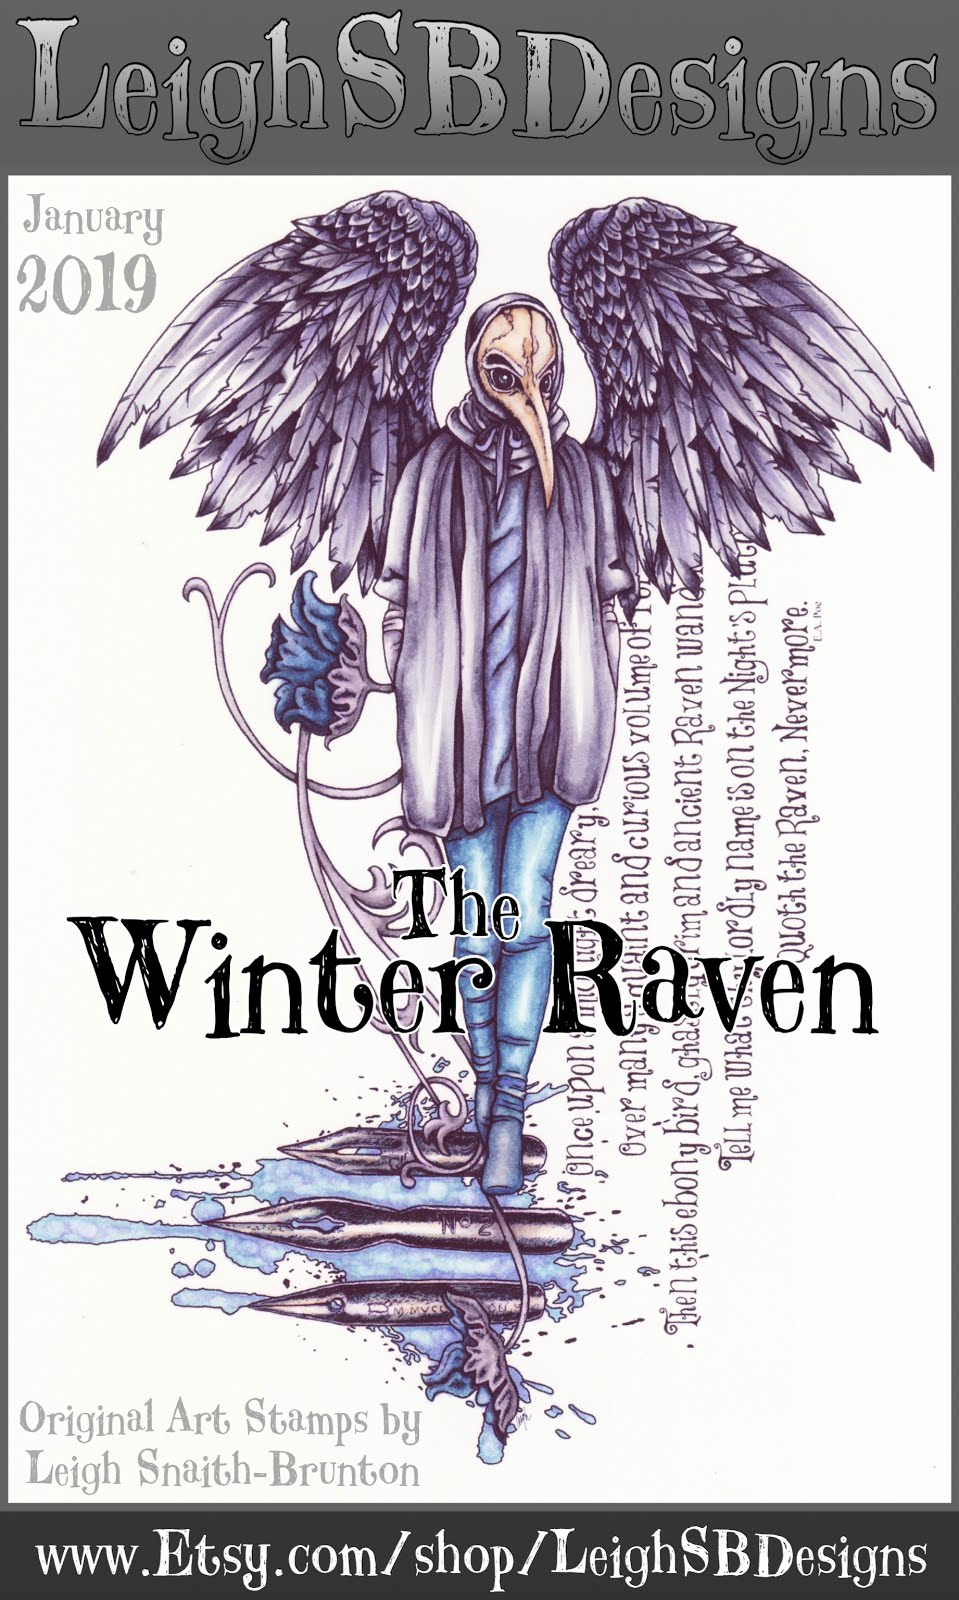 The Winter Raven - New Release!